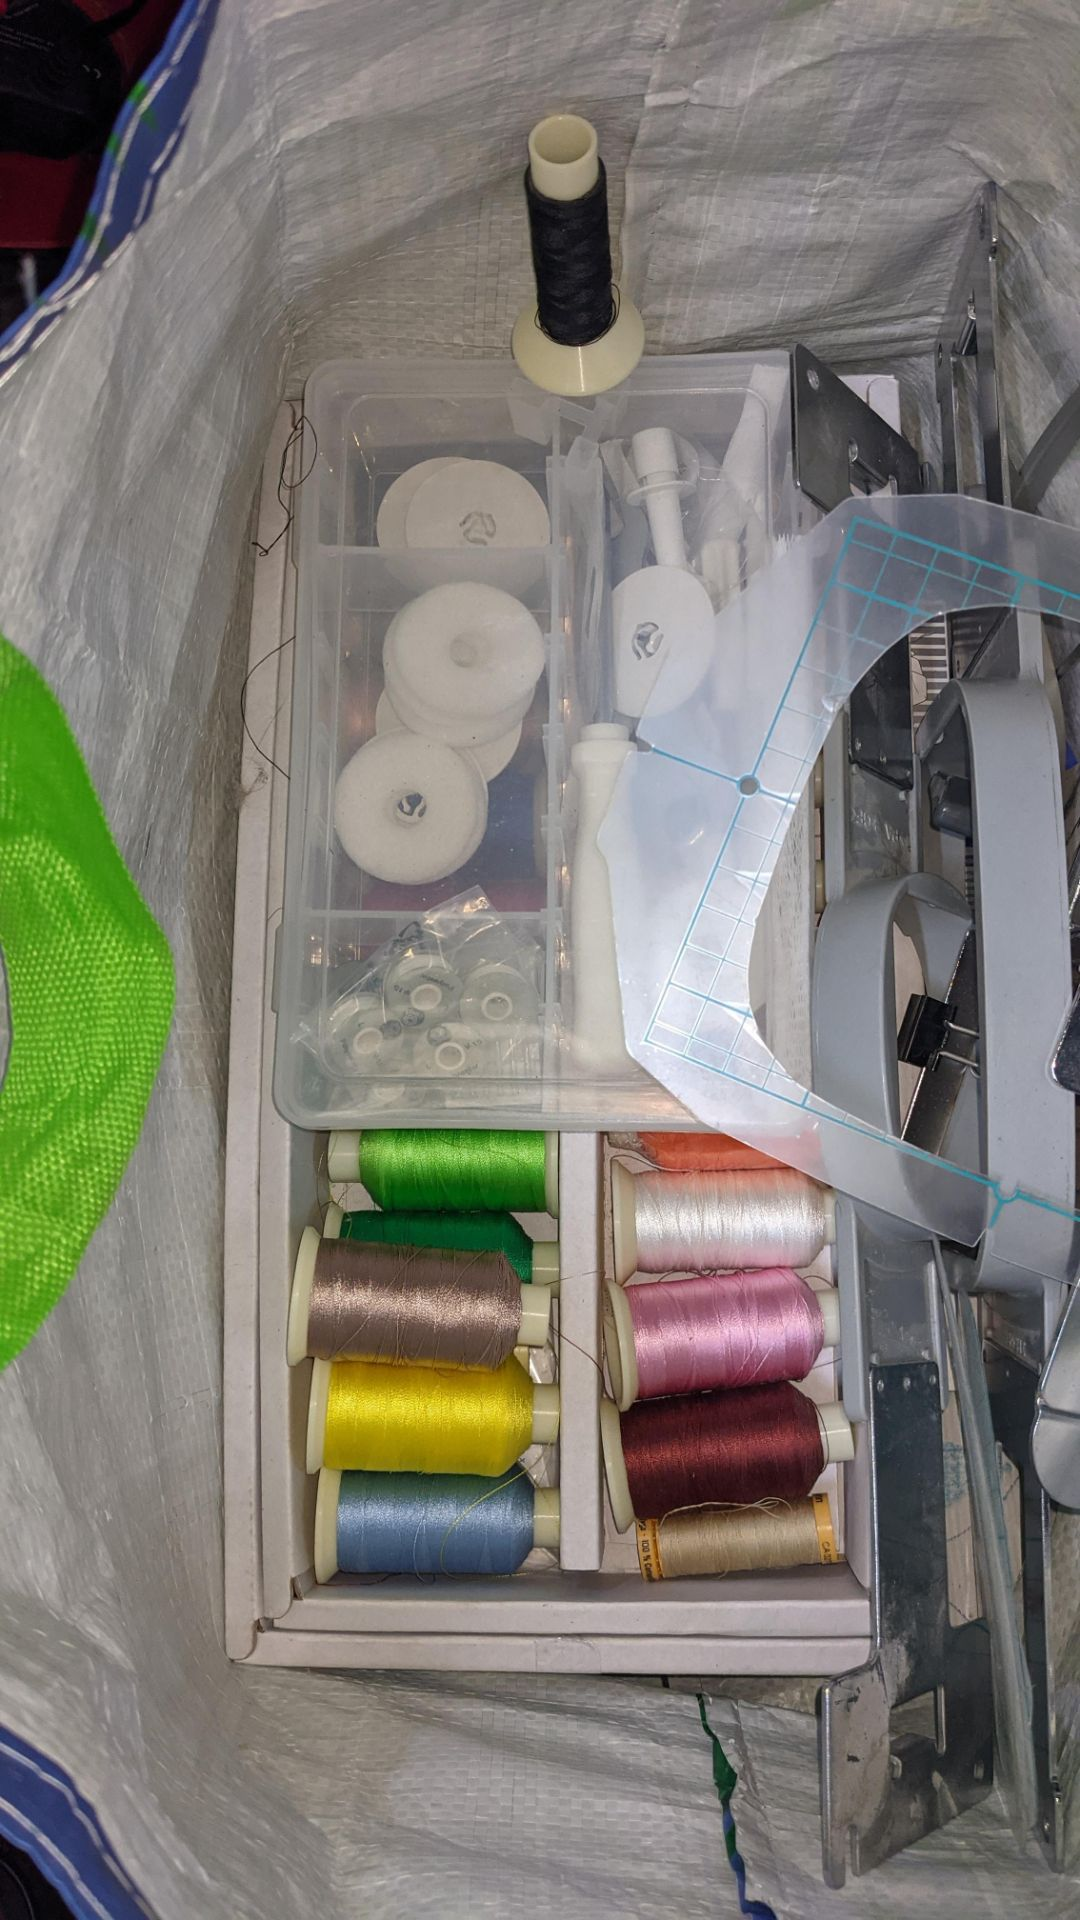 Brother PR655 single head 6 needle embroidery machine, serial no. E72364-D6B113501 incorporating lar - Image 19 of 25